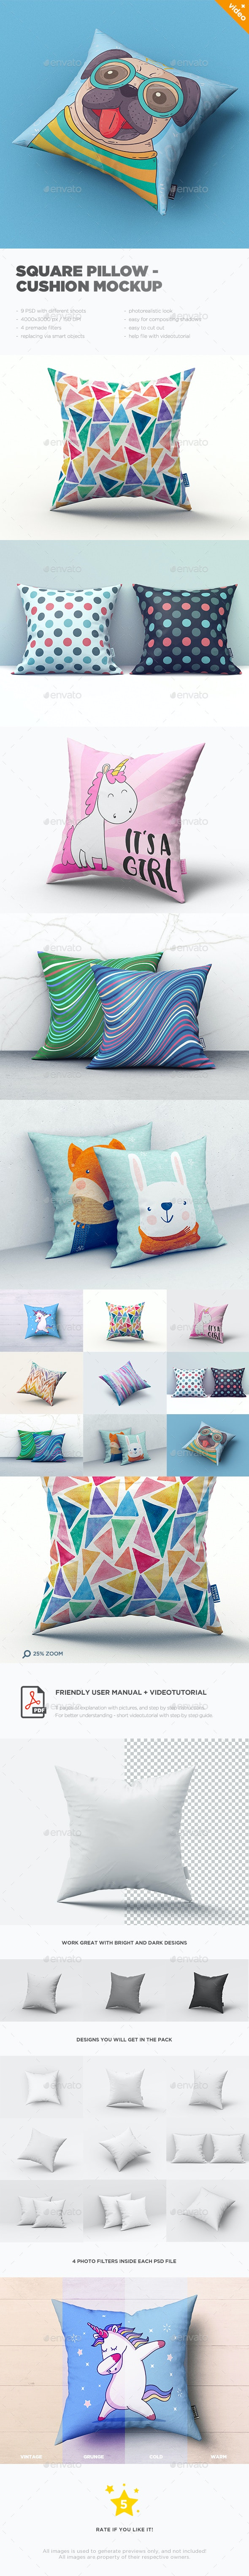 Square Pillow / Cushion MockUp - Miscellaneous Product Mock-Ups